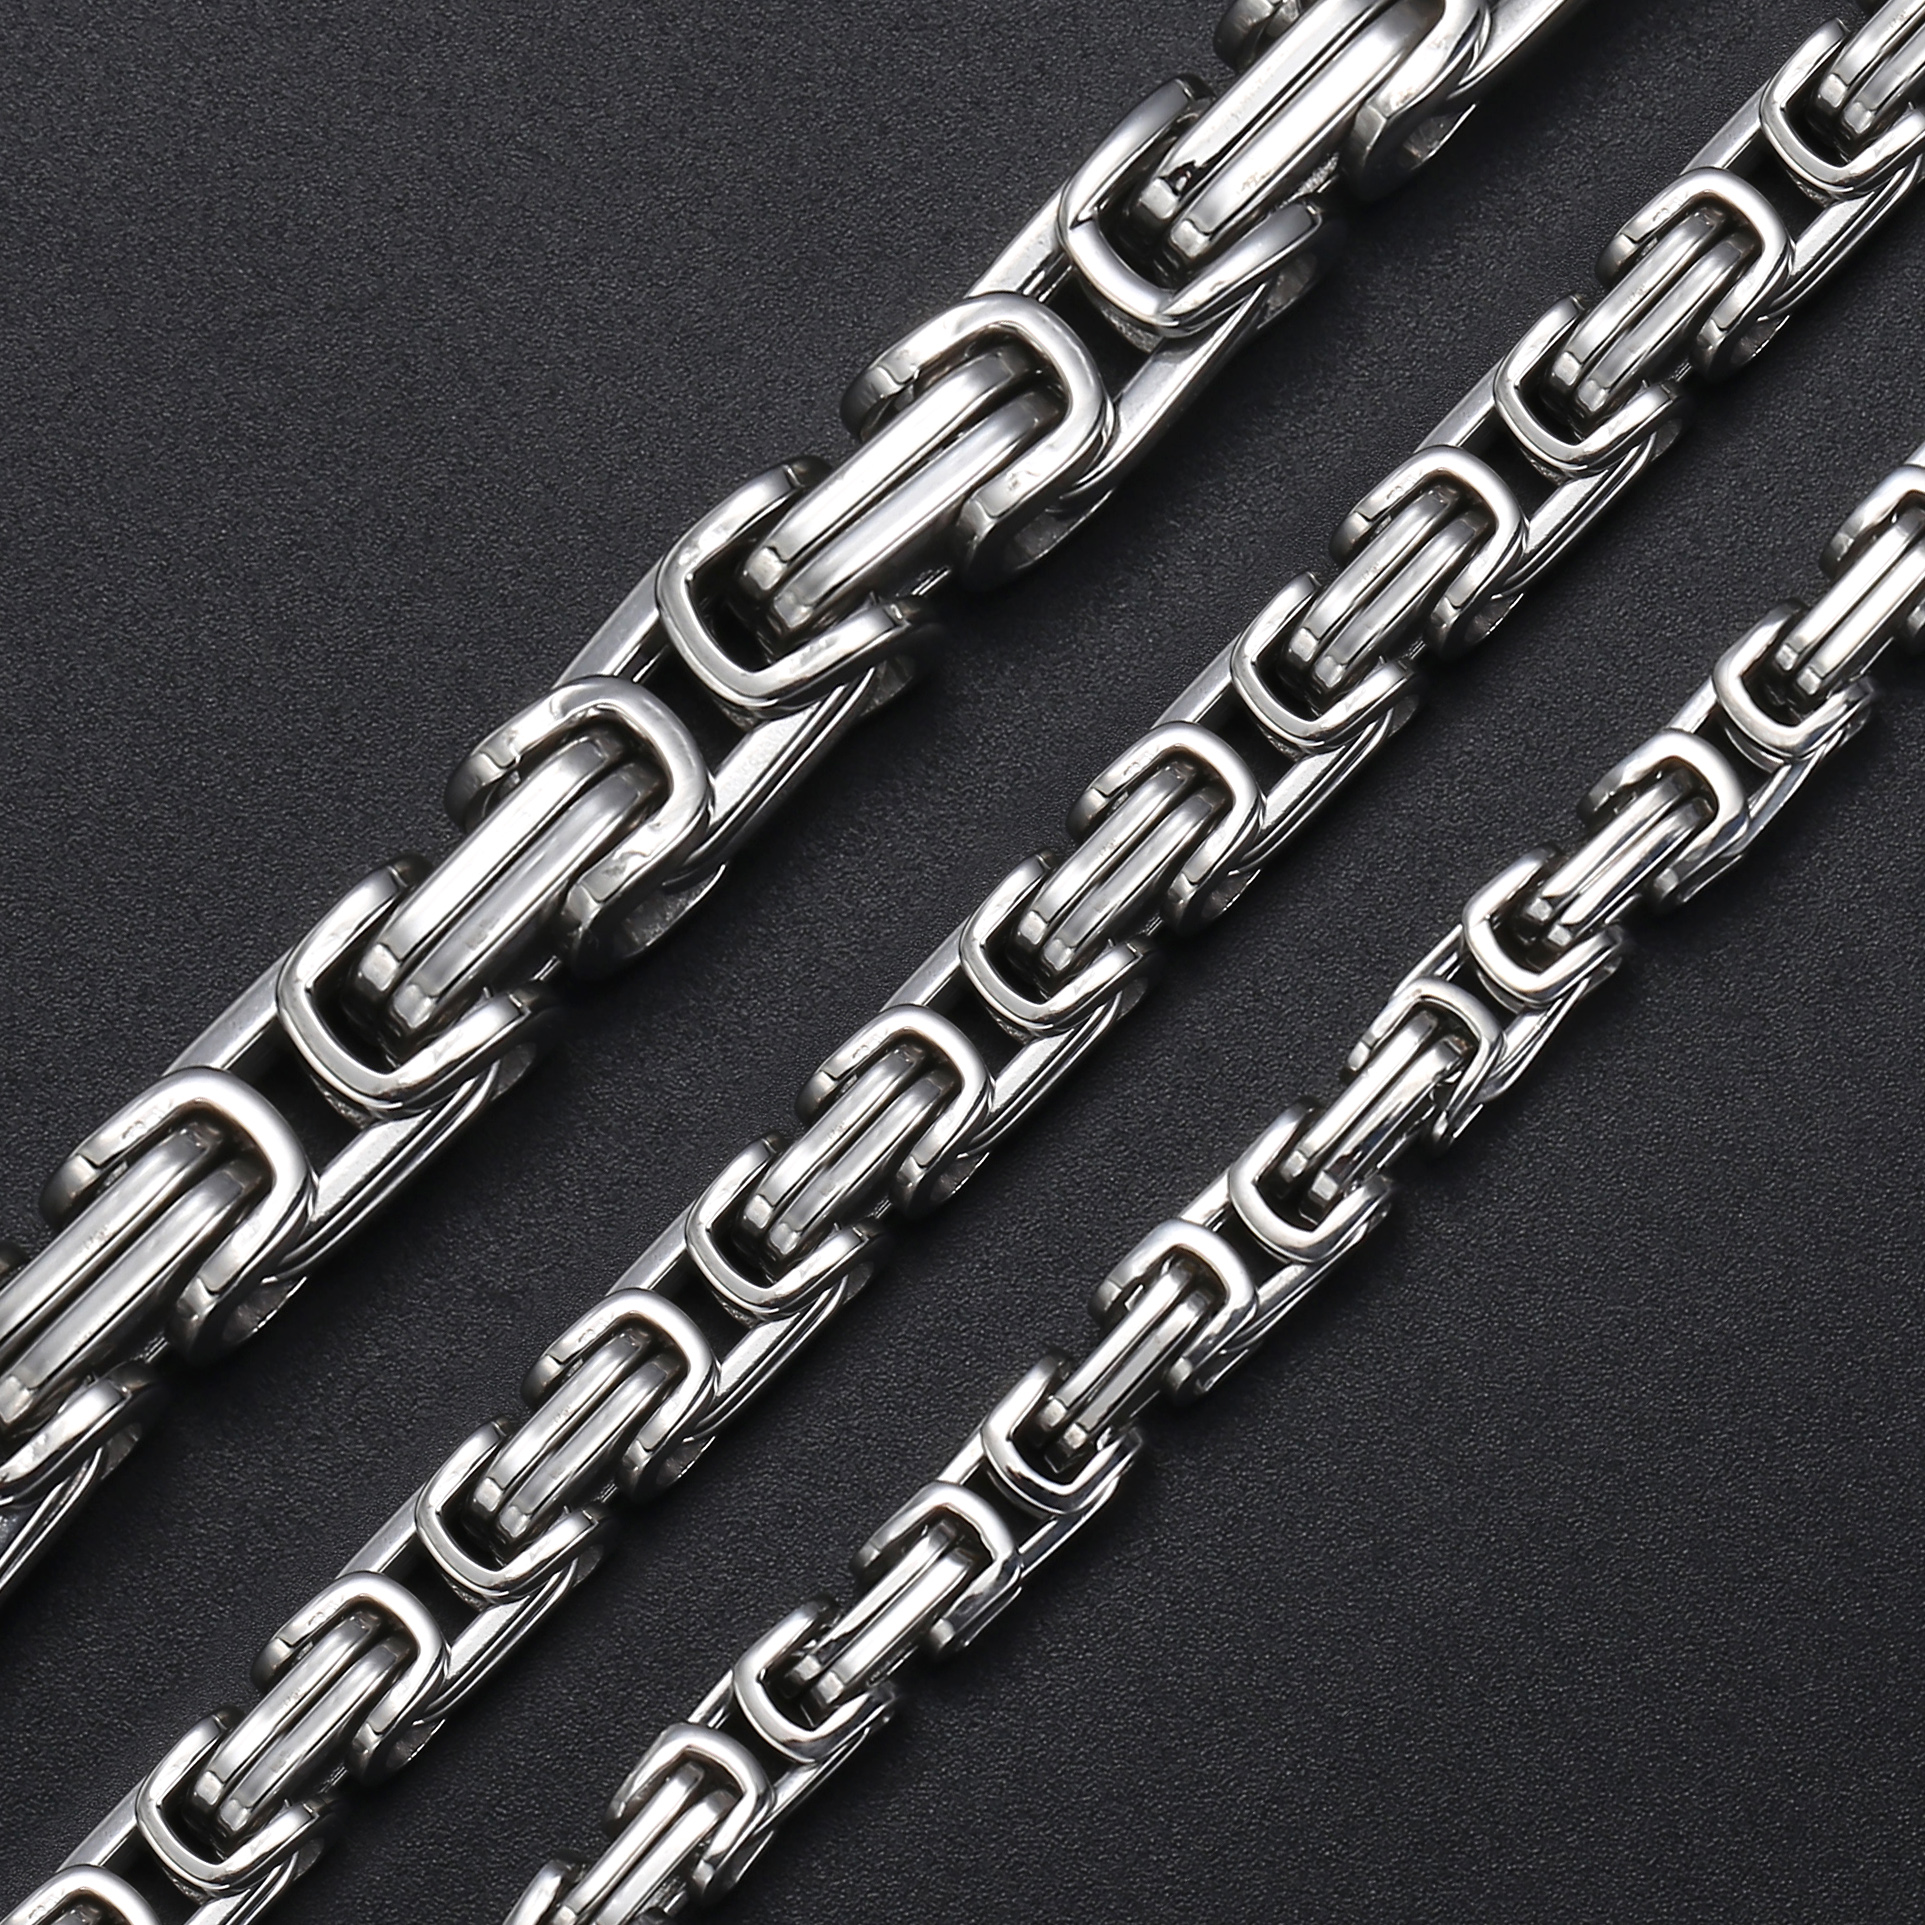 Stainless Steel Byzantine Chain Necklace for Men Silver Tone Jewelry Fashion Mens Necklaces Chains 5/7mm Davieslee New KNN21Stainless Steel Byzantine Chain Necklace for Men Silver Tone Jewelry Fashion Mens Necklaces Chains 5/7mm Davieslee New KNN21